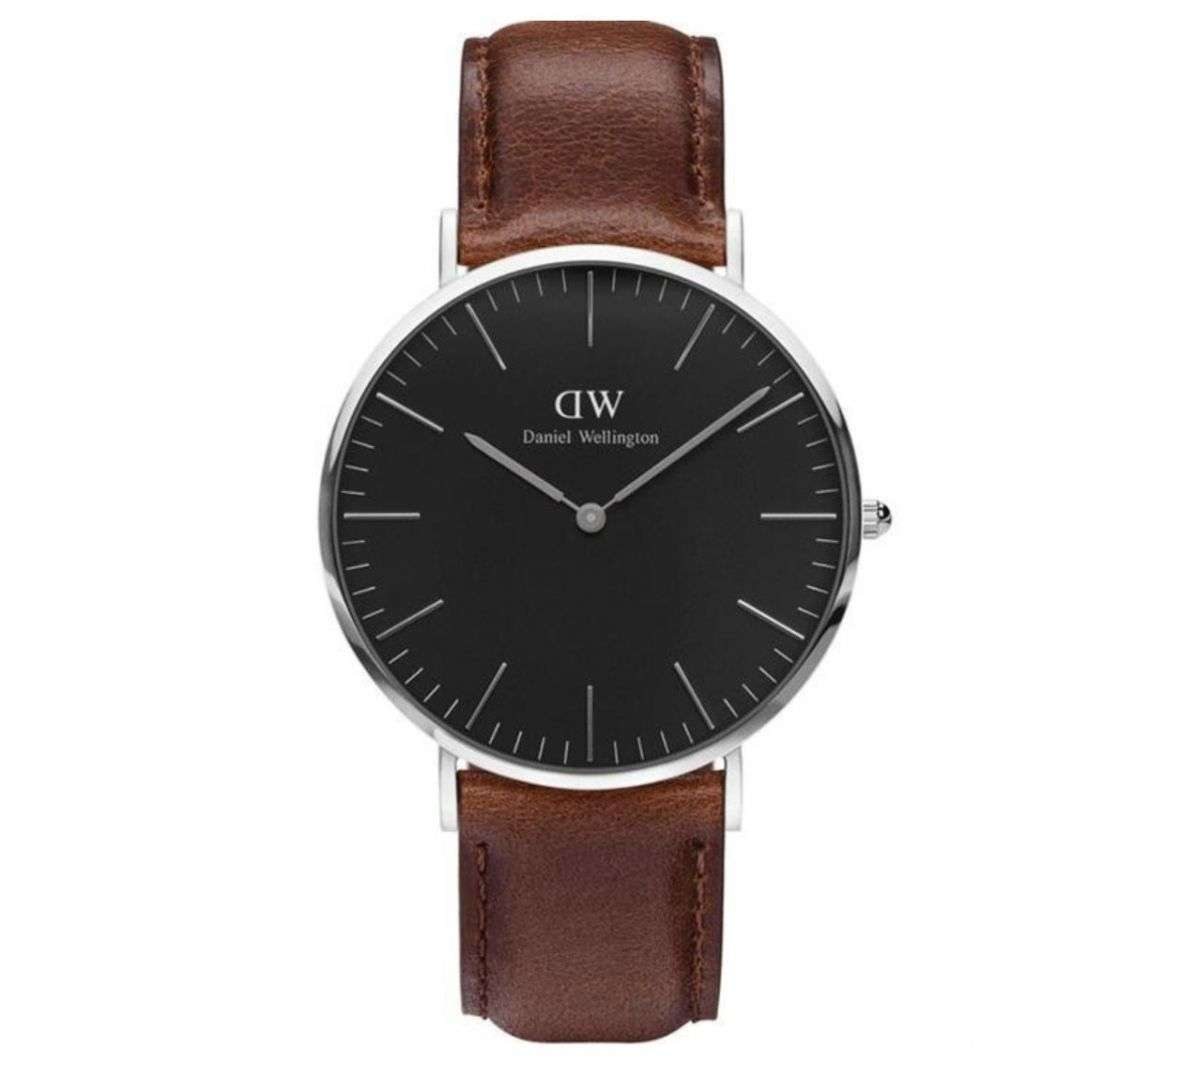 שעון יד אנלוגי daniel wellington dw00100131 דניאל וולינגטון